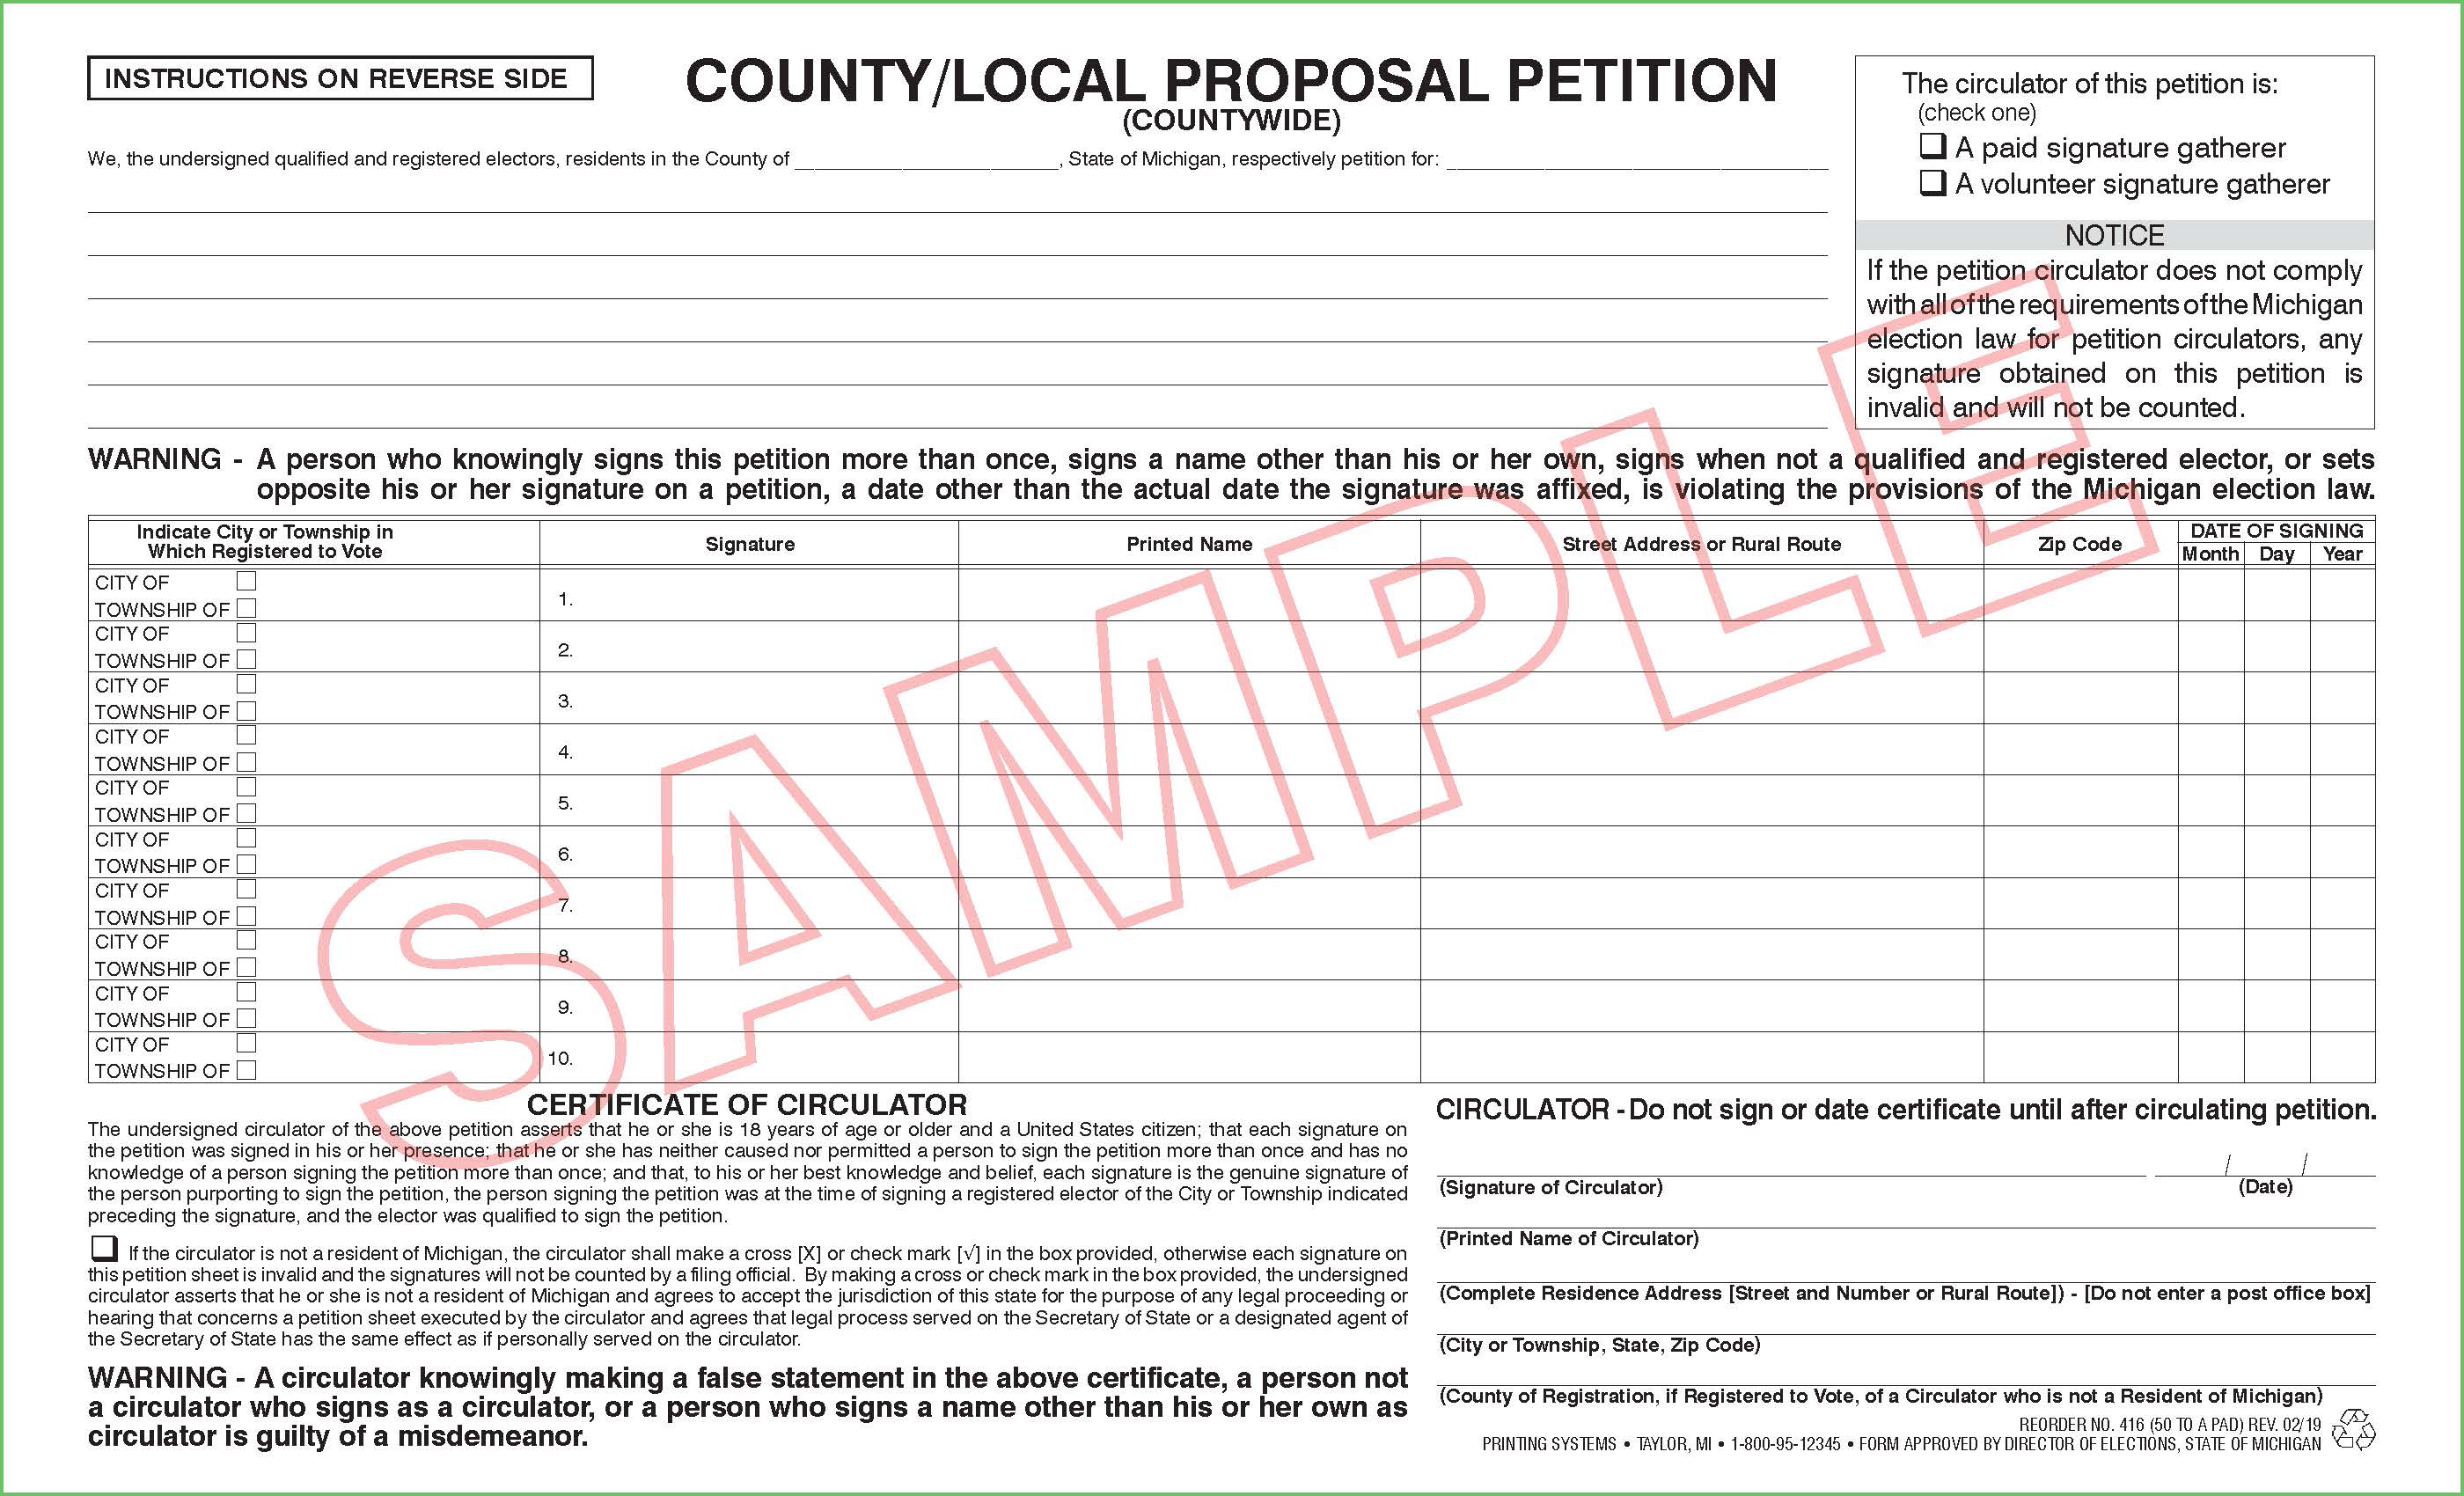 416 County/Local Proposal Petition (Countywide) (50 per pad) Rev. 10/19